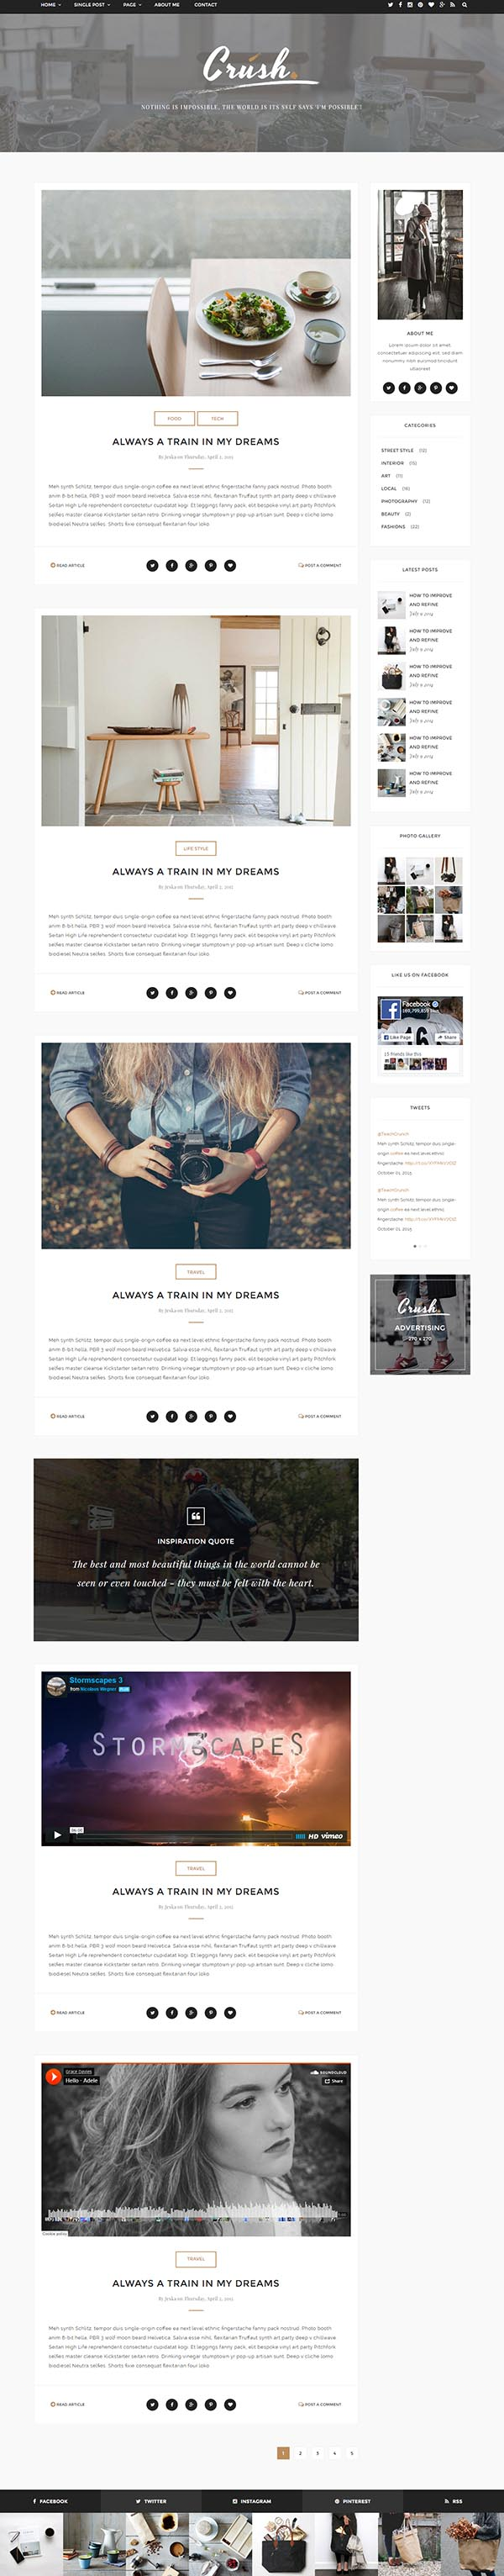 Crush - Personal Blog HTML5 Template